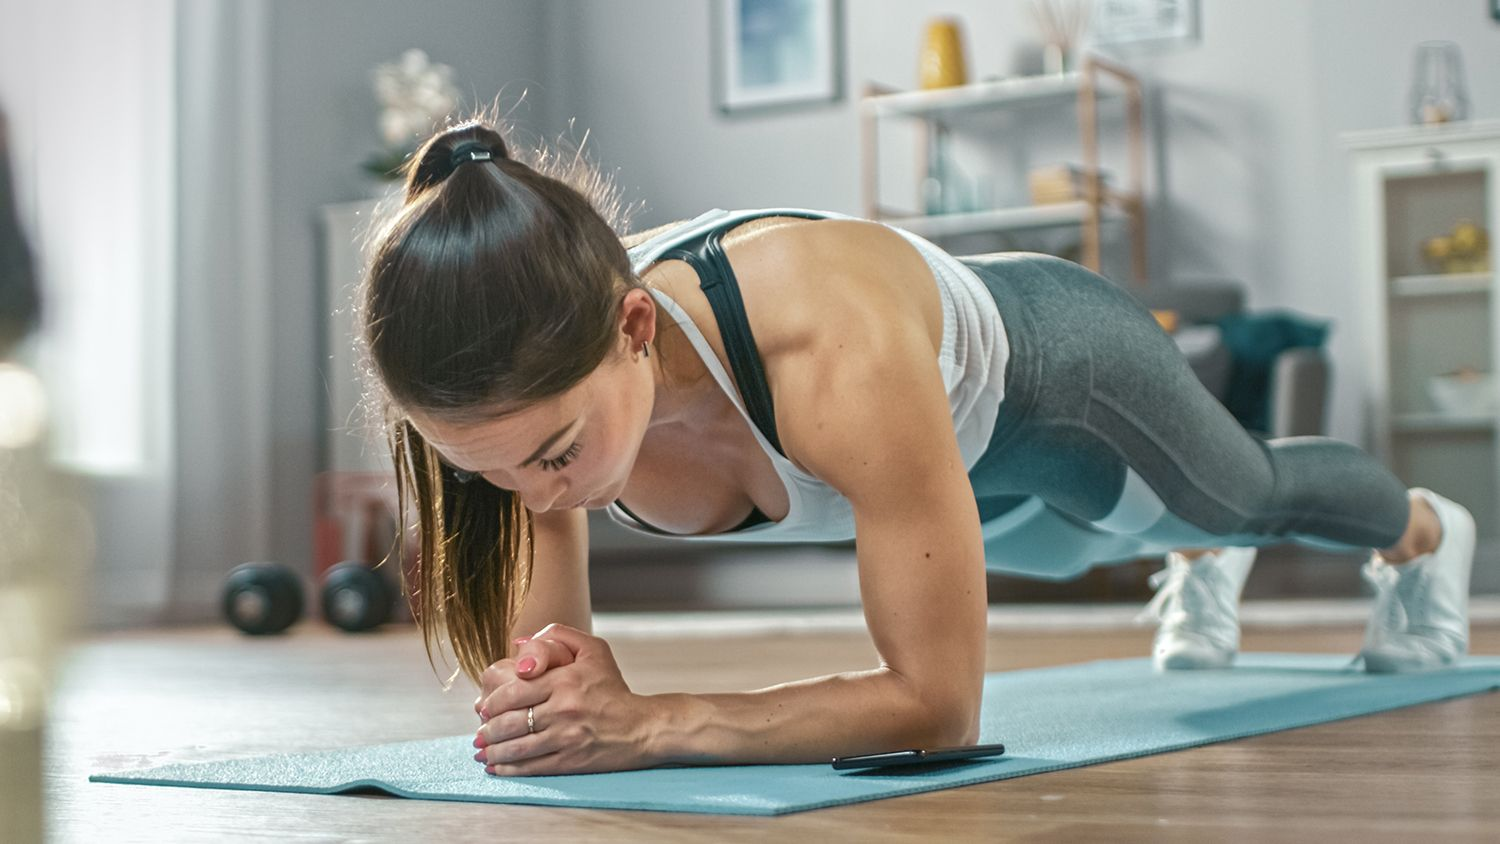 14 Best Home Workouts For Women According To Personal Trainers